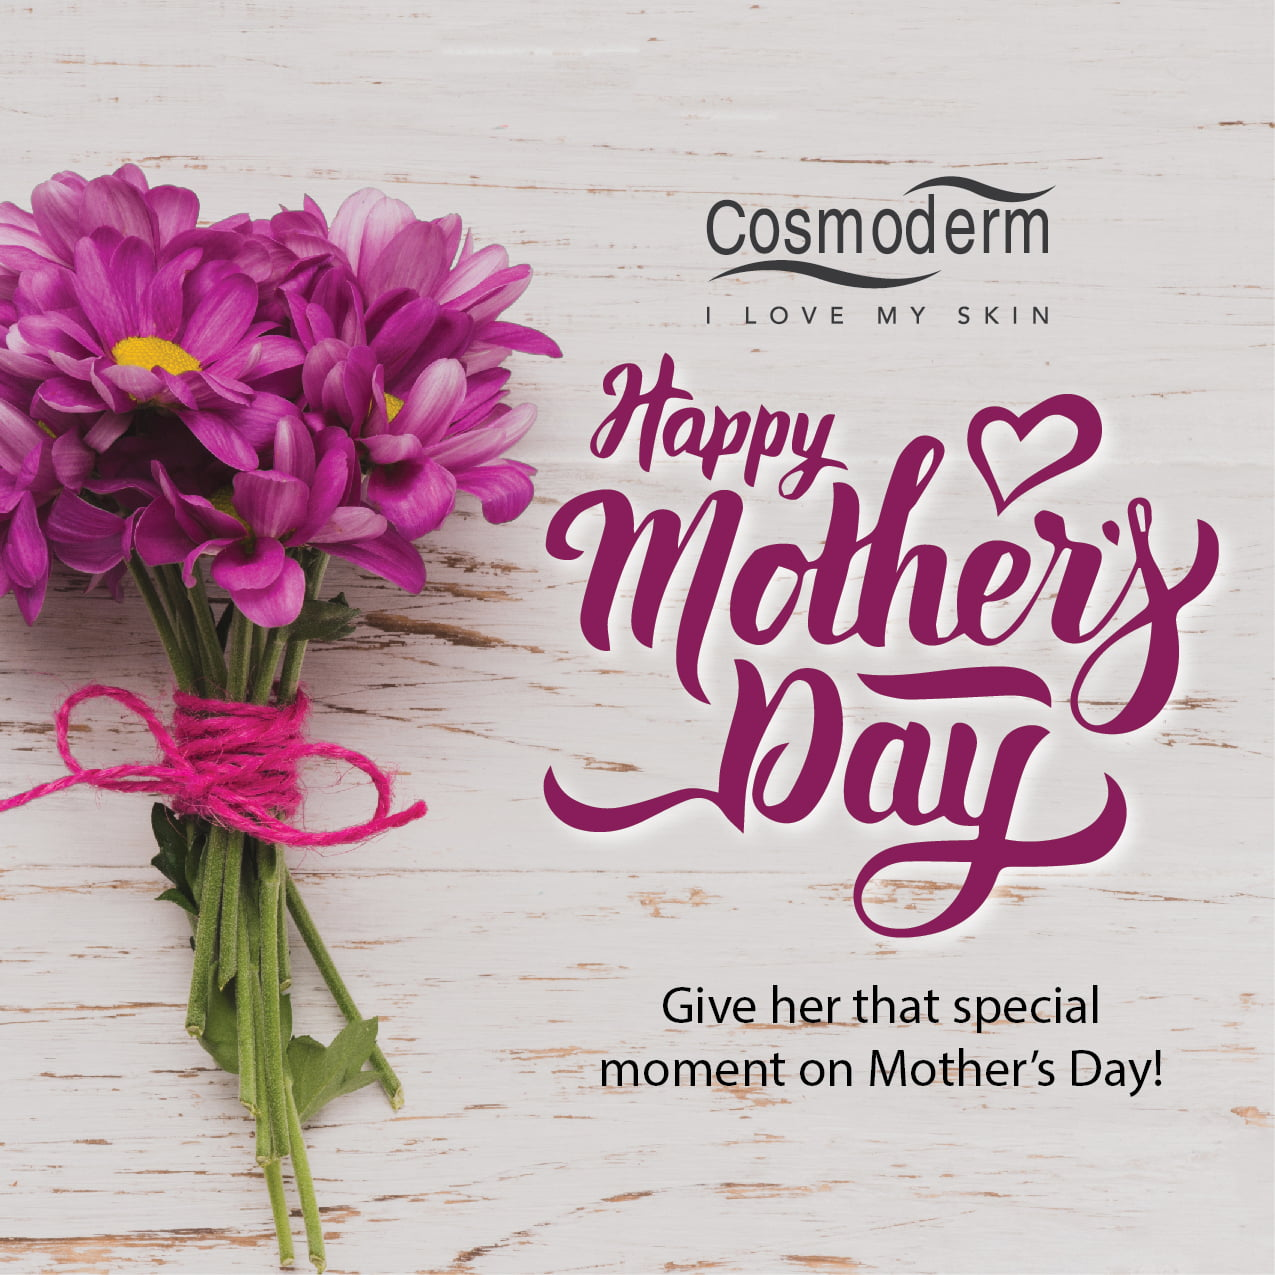 IDEA HADIAH HARI IBU : COSMODERM GIFT SET FOR MOTHER'S DAY